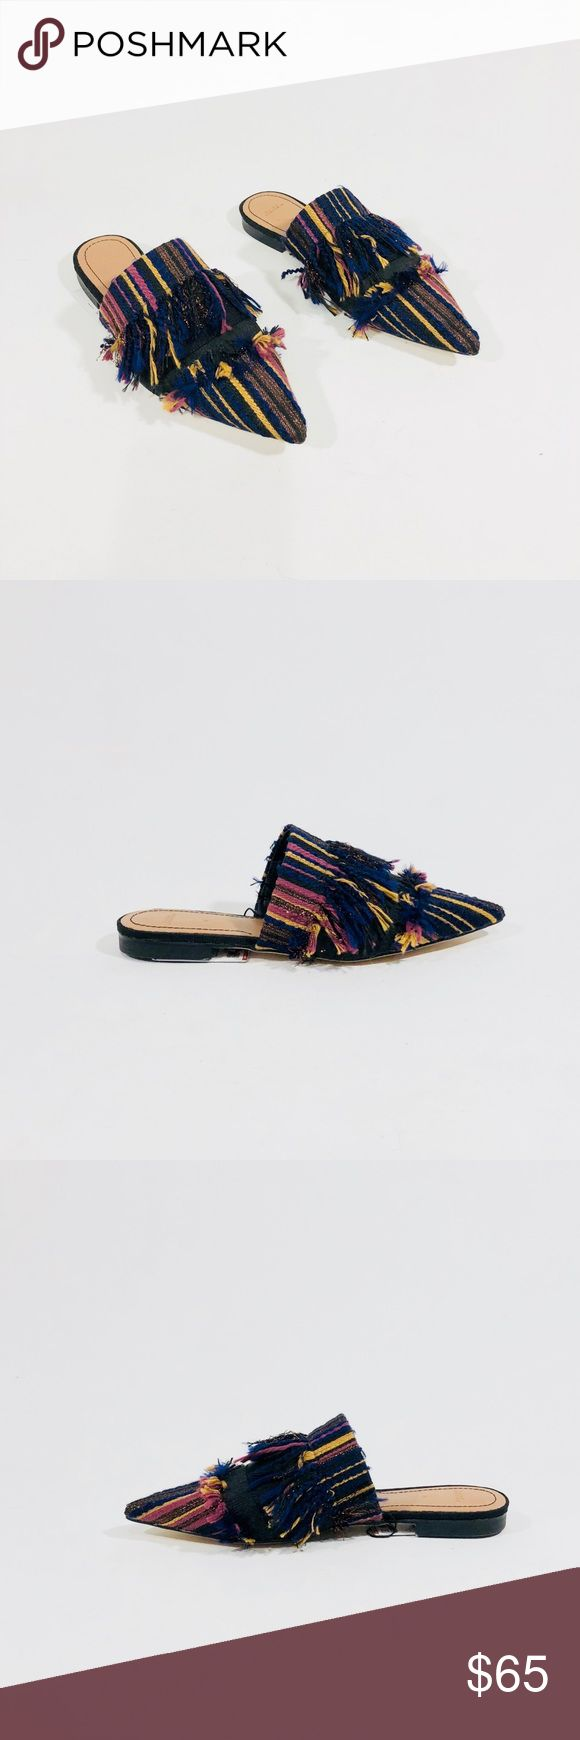 ZARA MULTI-COLOR FLAT STRIPED MULES WITH FRINGE Zara Flat Multi-color Mules  Size: 36/6  Condition: New with tags  Details:  Pointed toe mules  Striped upper with fringe detail  Upper: 100% polyester  Soles: 100% thermoplastic rubber Zara Shoes Mules & Clogs